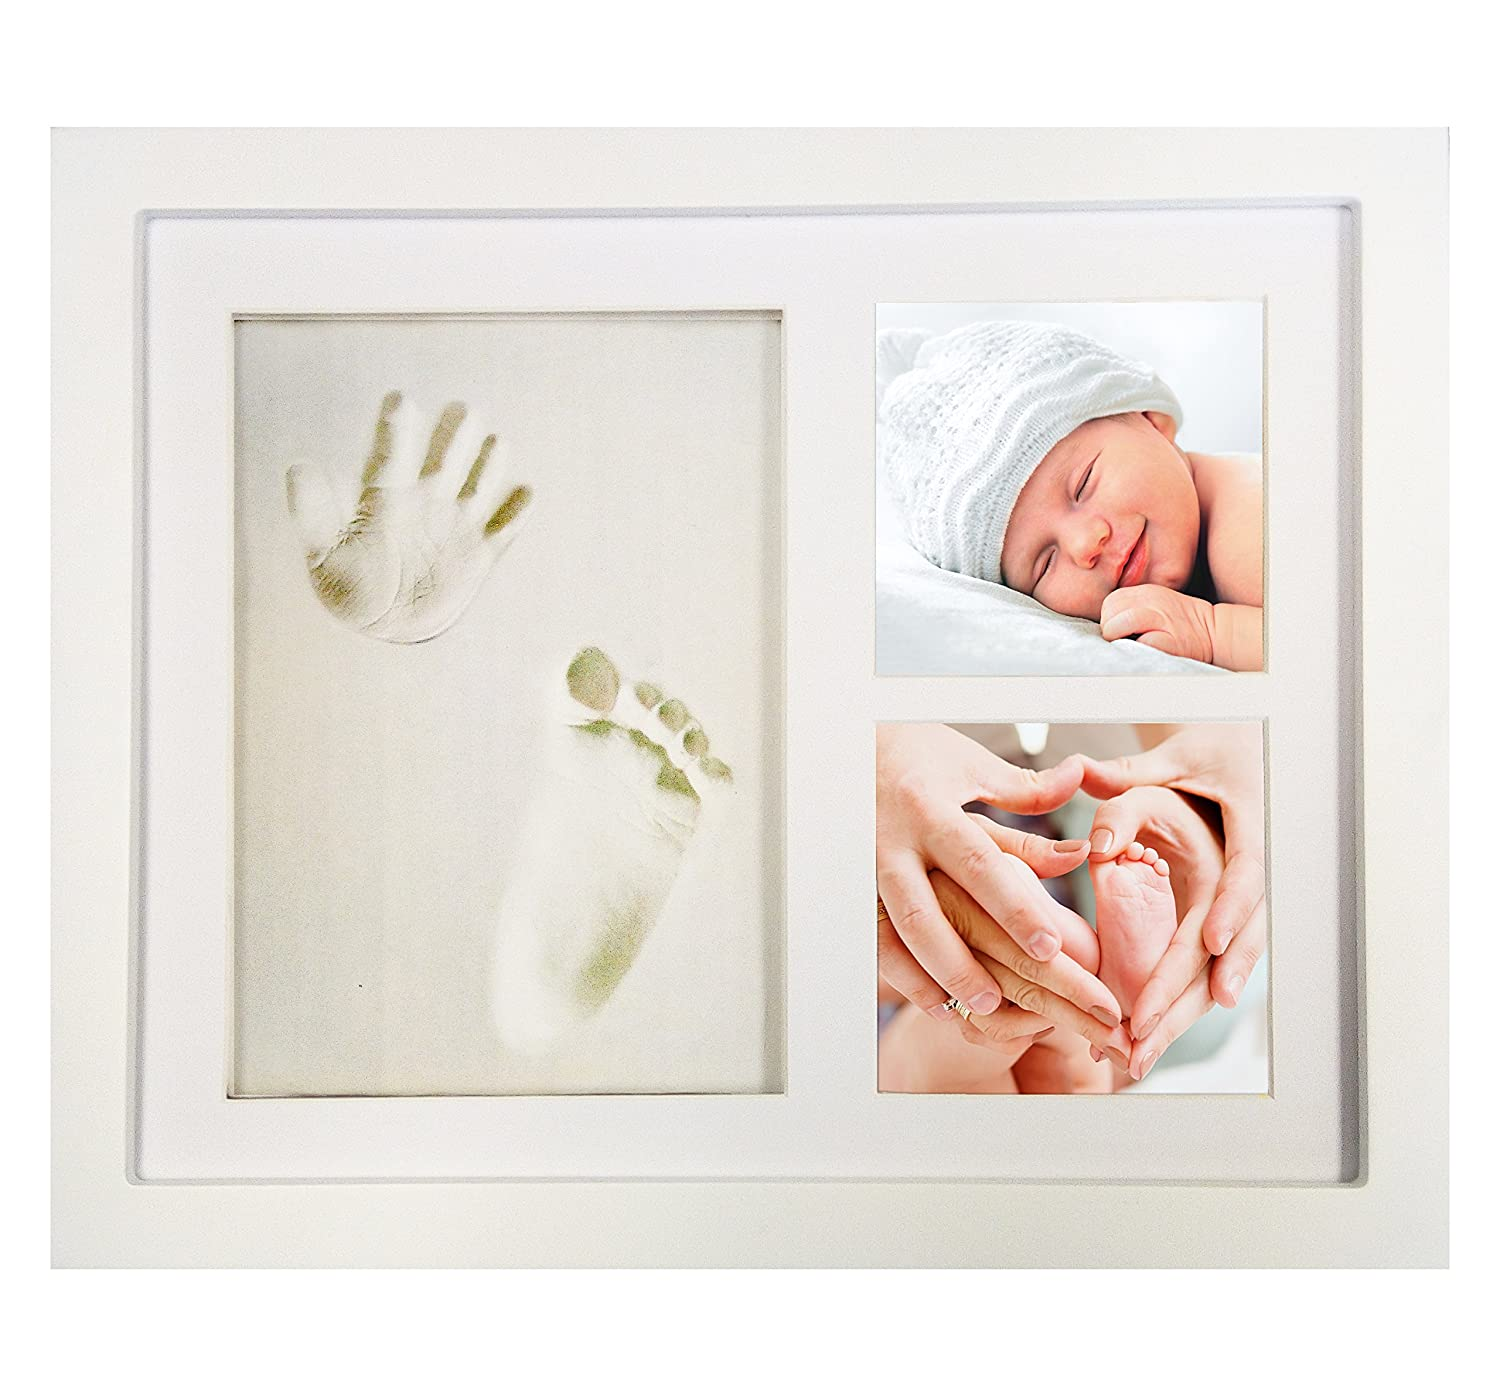 """White Clay Hand/Footprint Photo Frame for Babies, Kids, and Pets – Includes 9"""" x 11"""" Colored MDF Wood Photo Frame, Roller, Mounting Hardware, and Instructions -"""